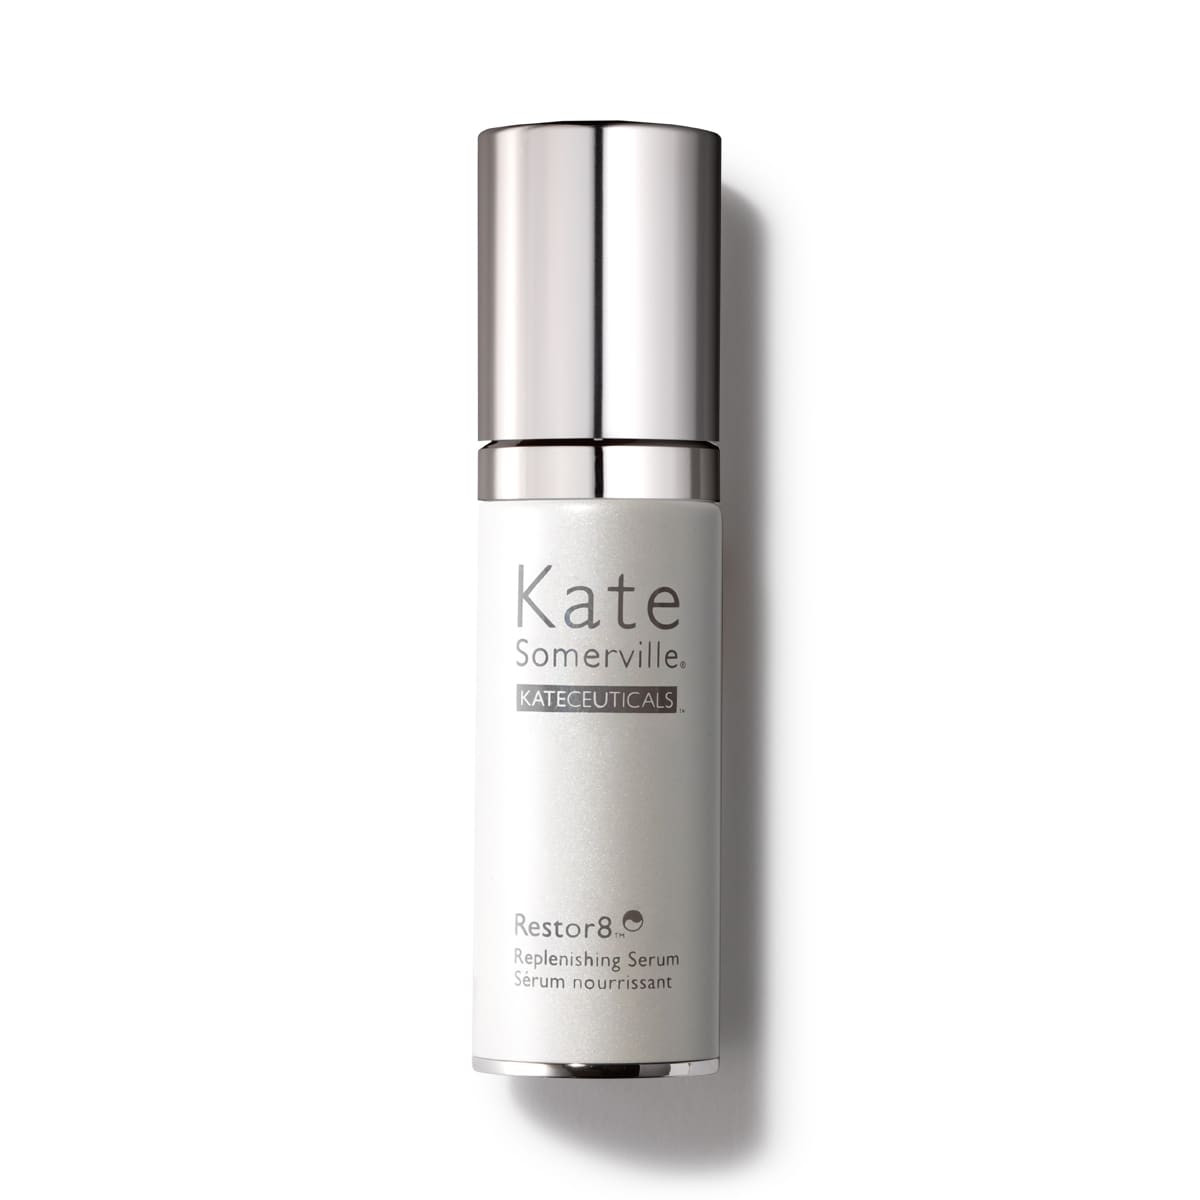 Kate Somerville Restor8 Serum